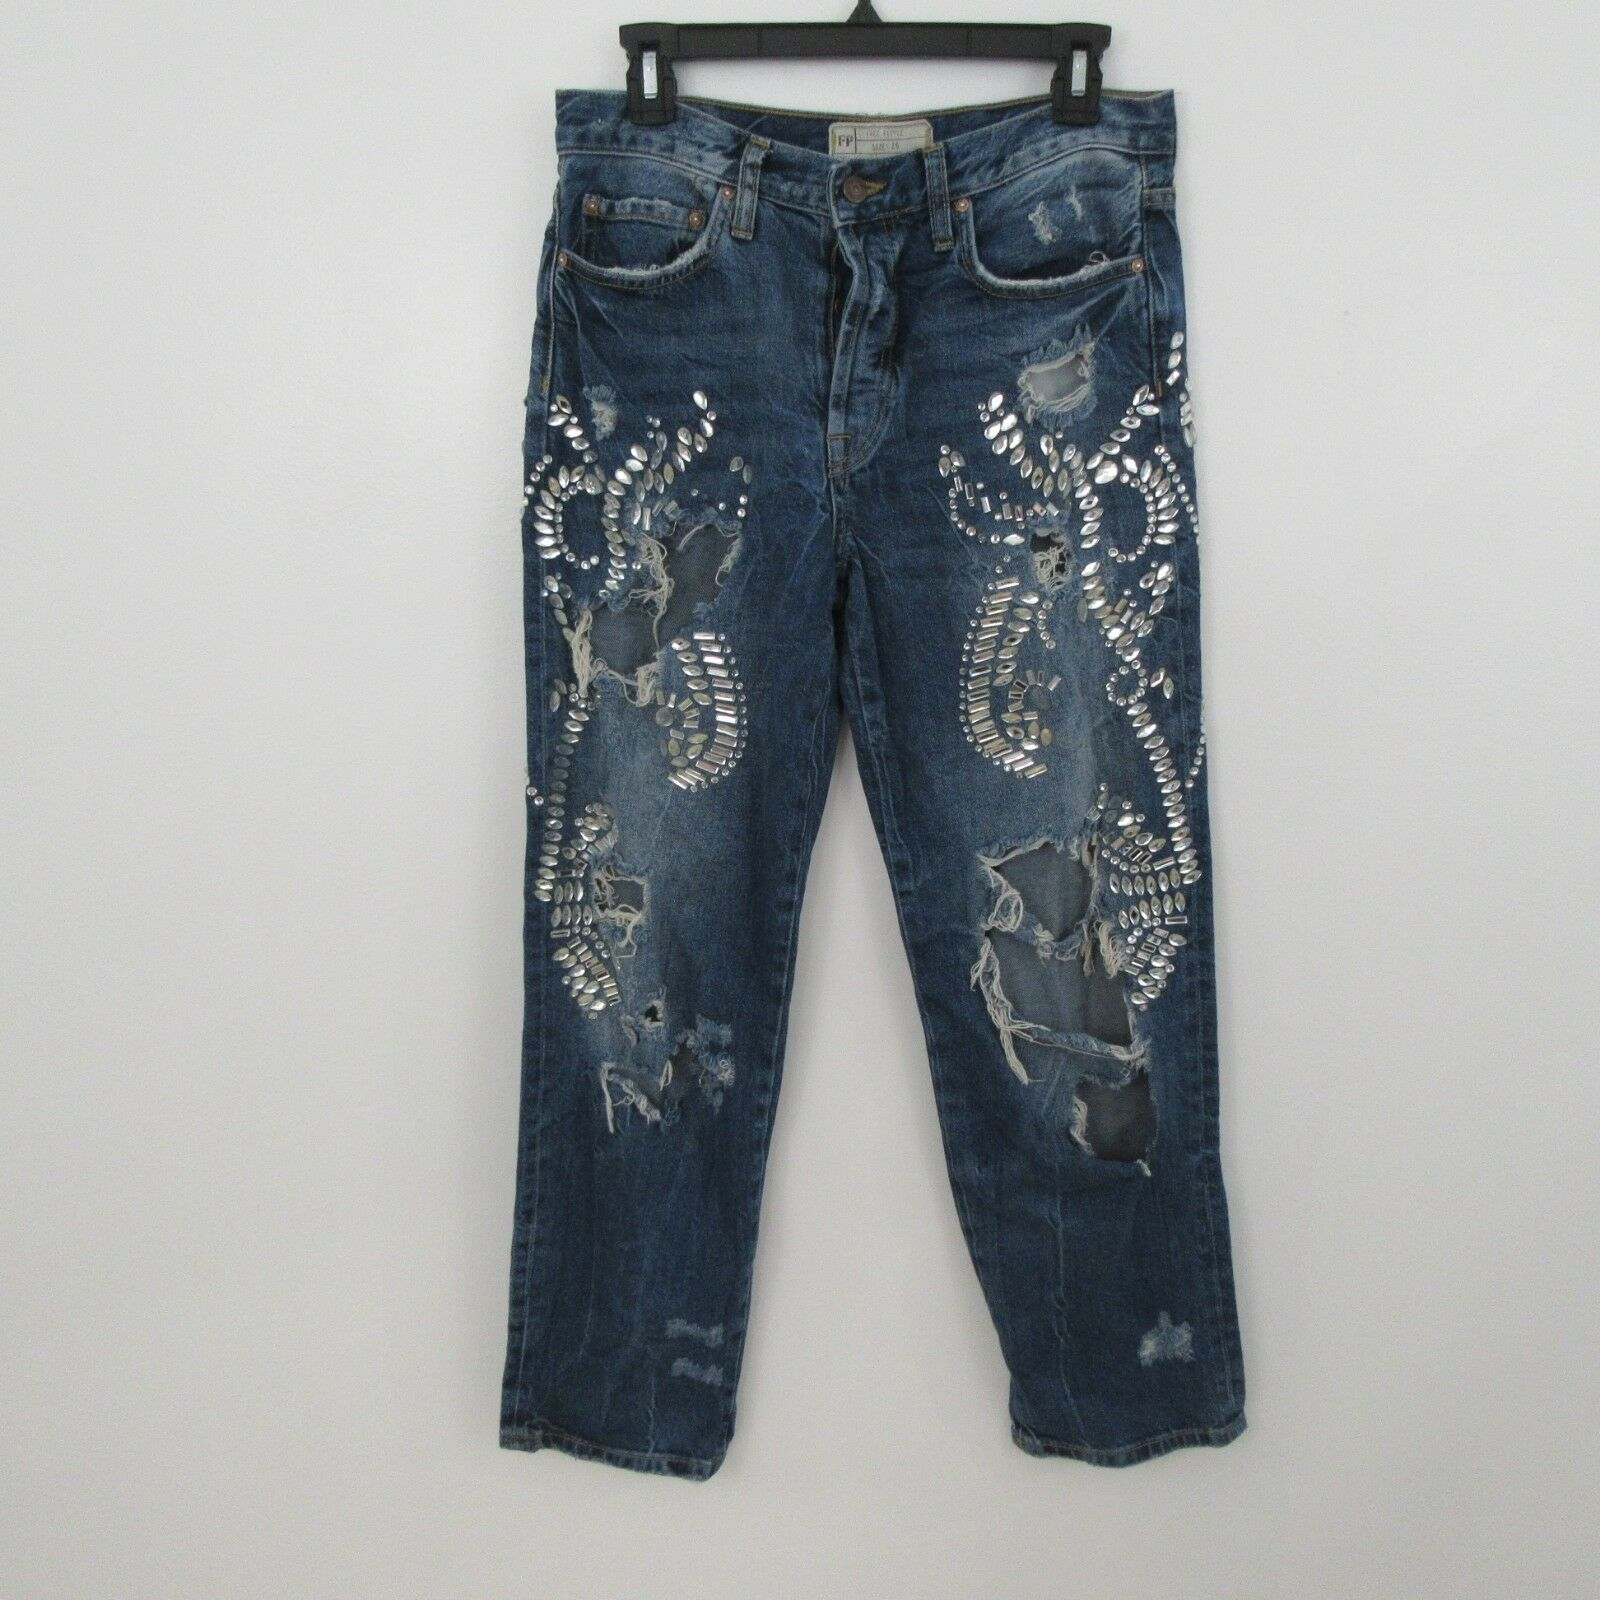 Free People Rhinestone Embellished Distressed Destroyed Relaxed Jeans 26